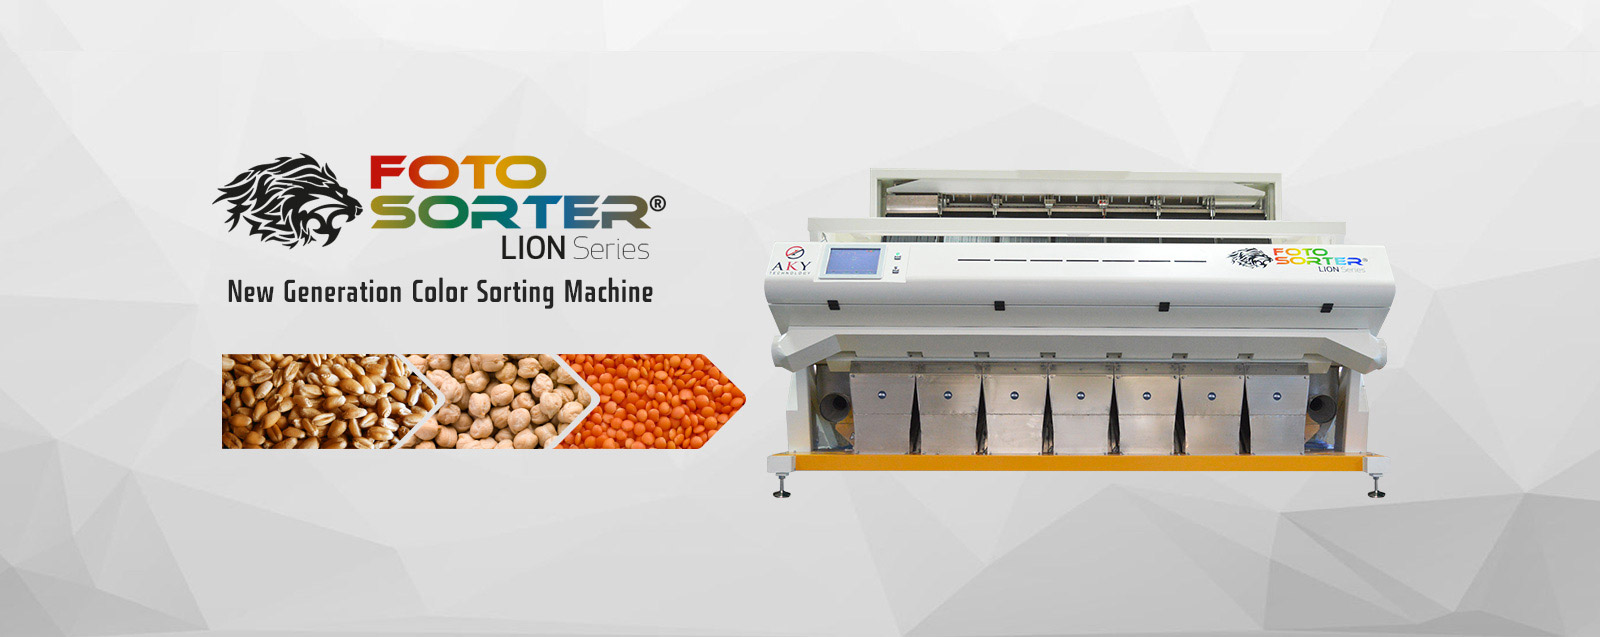 Meet AKY Technology's Fotosorter Lion Series Optical Color Sorting Machine